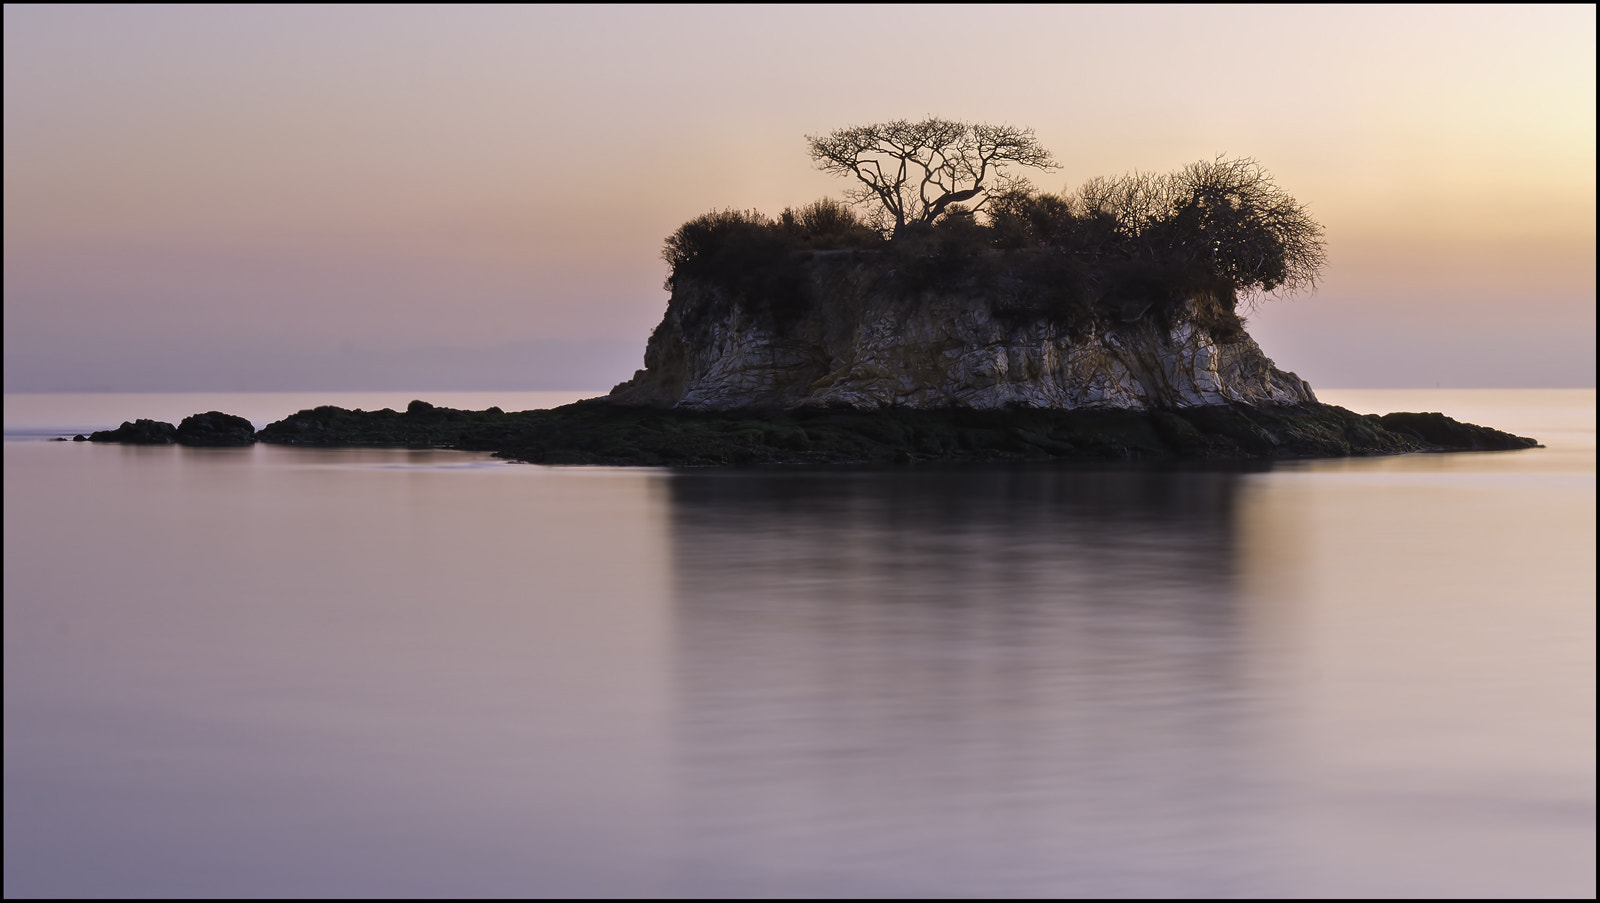 Photograph Island in the bay by Marc Briggs on 500px